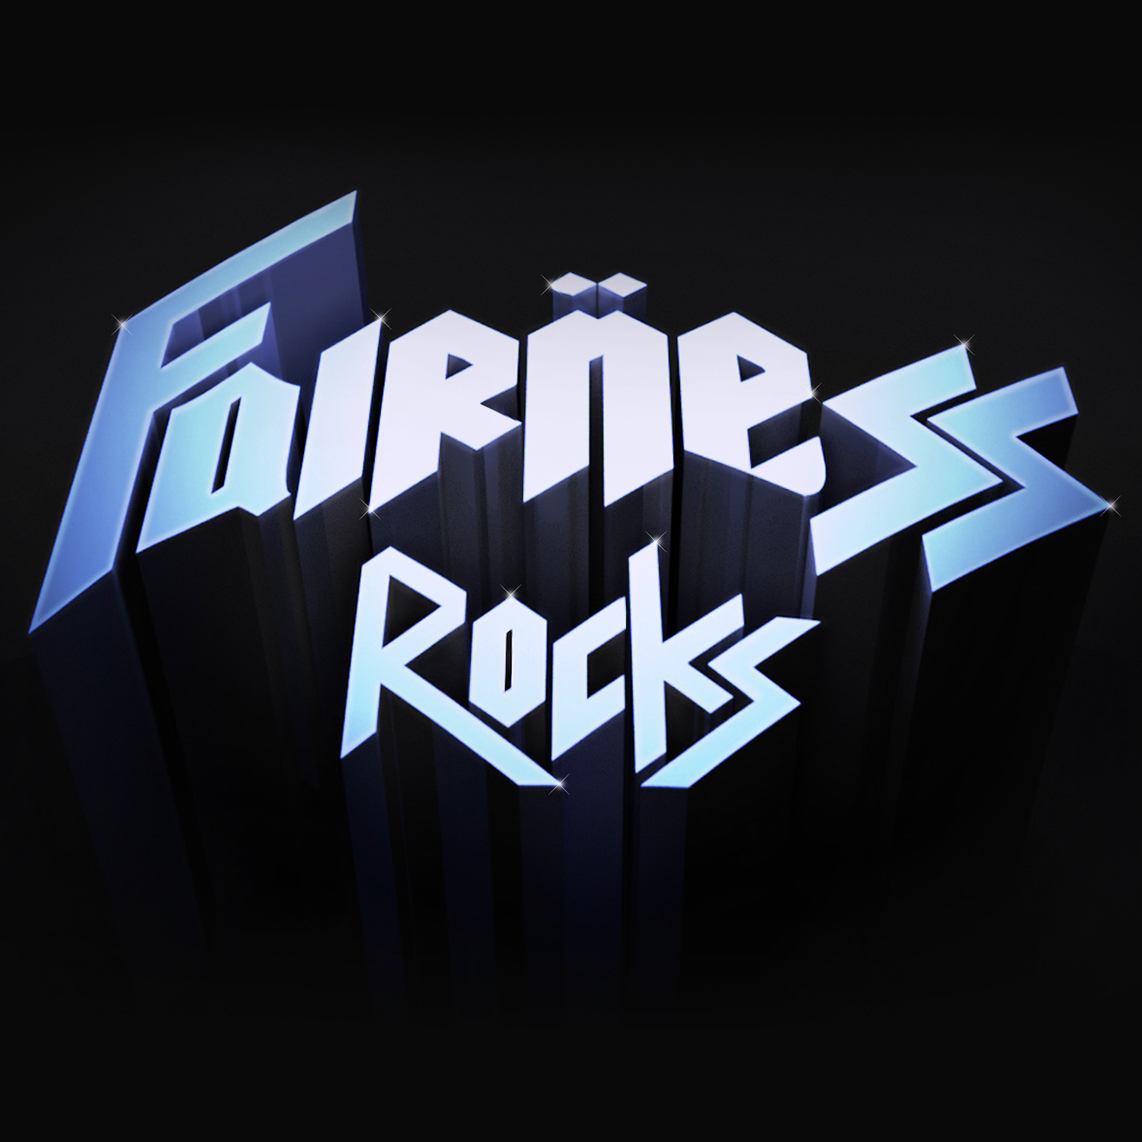 Fairness Rocks News SPINAL TAP CREATORS SET UP LICENSING BODY EXCLUSIVELY TO MANAGE EXPLOITATION OF THEIR ICONIC MOTION PICTURE